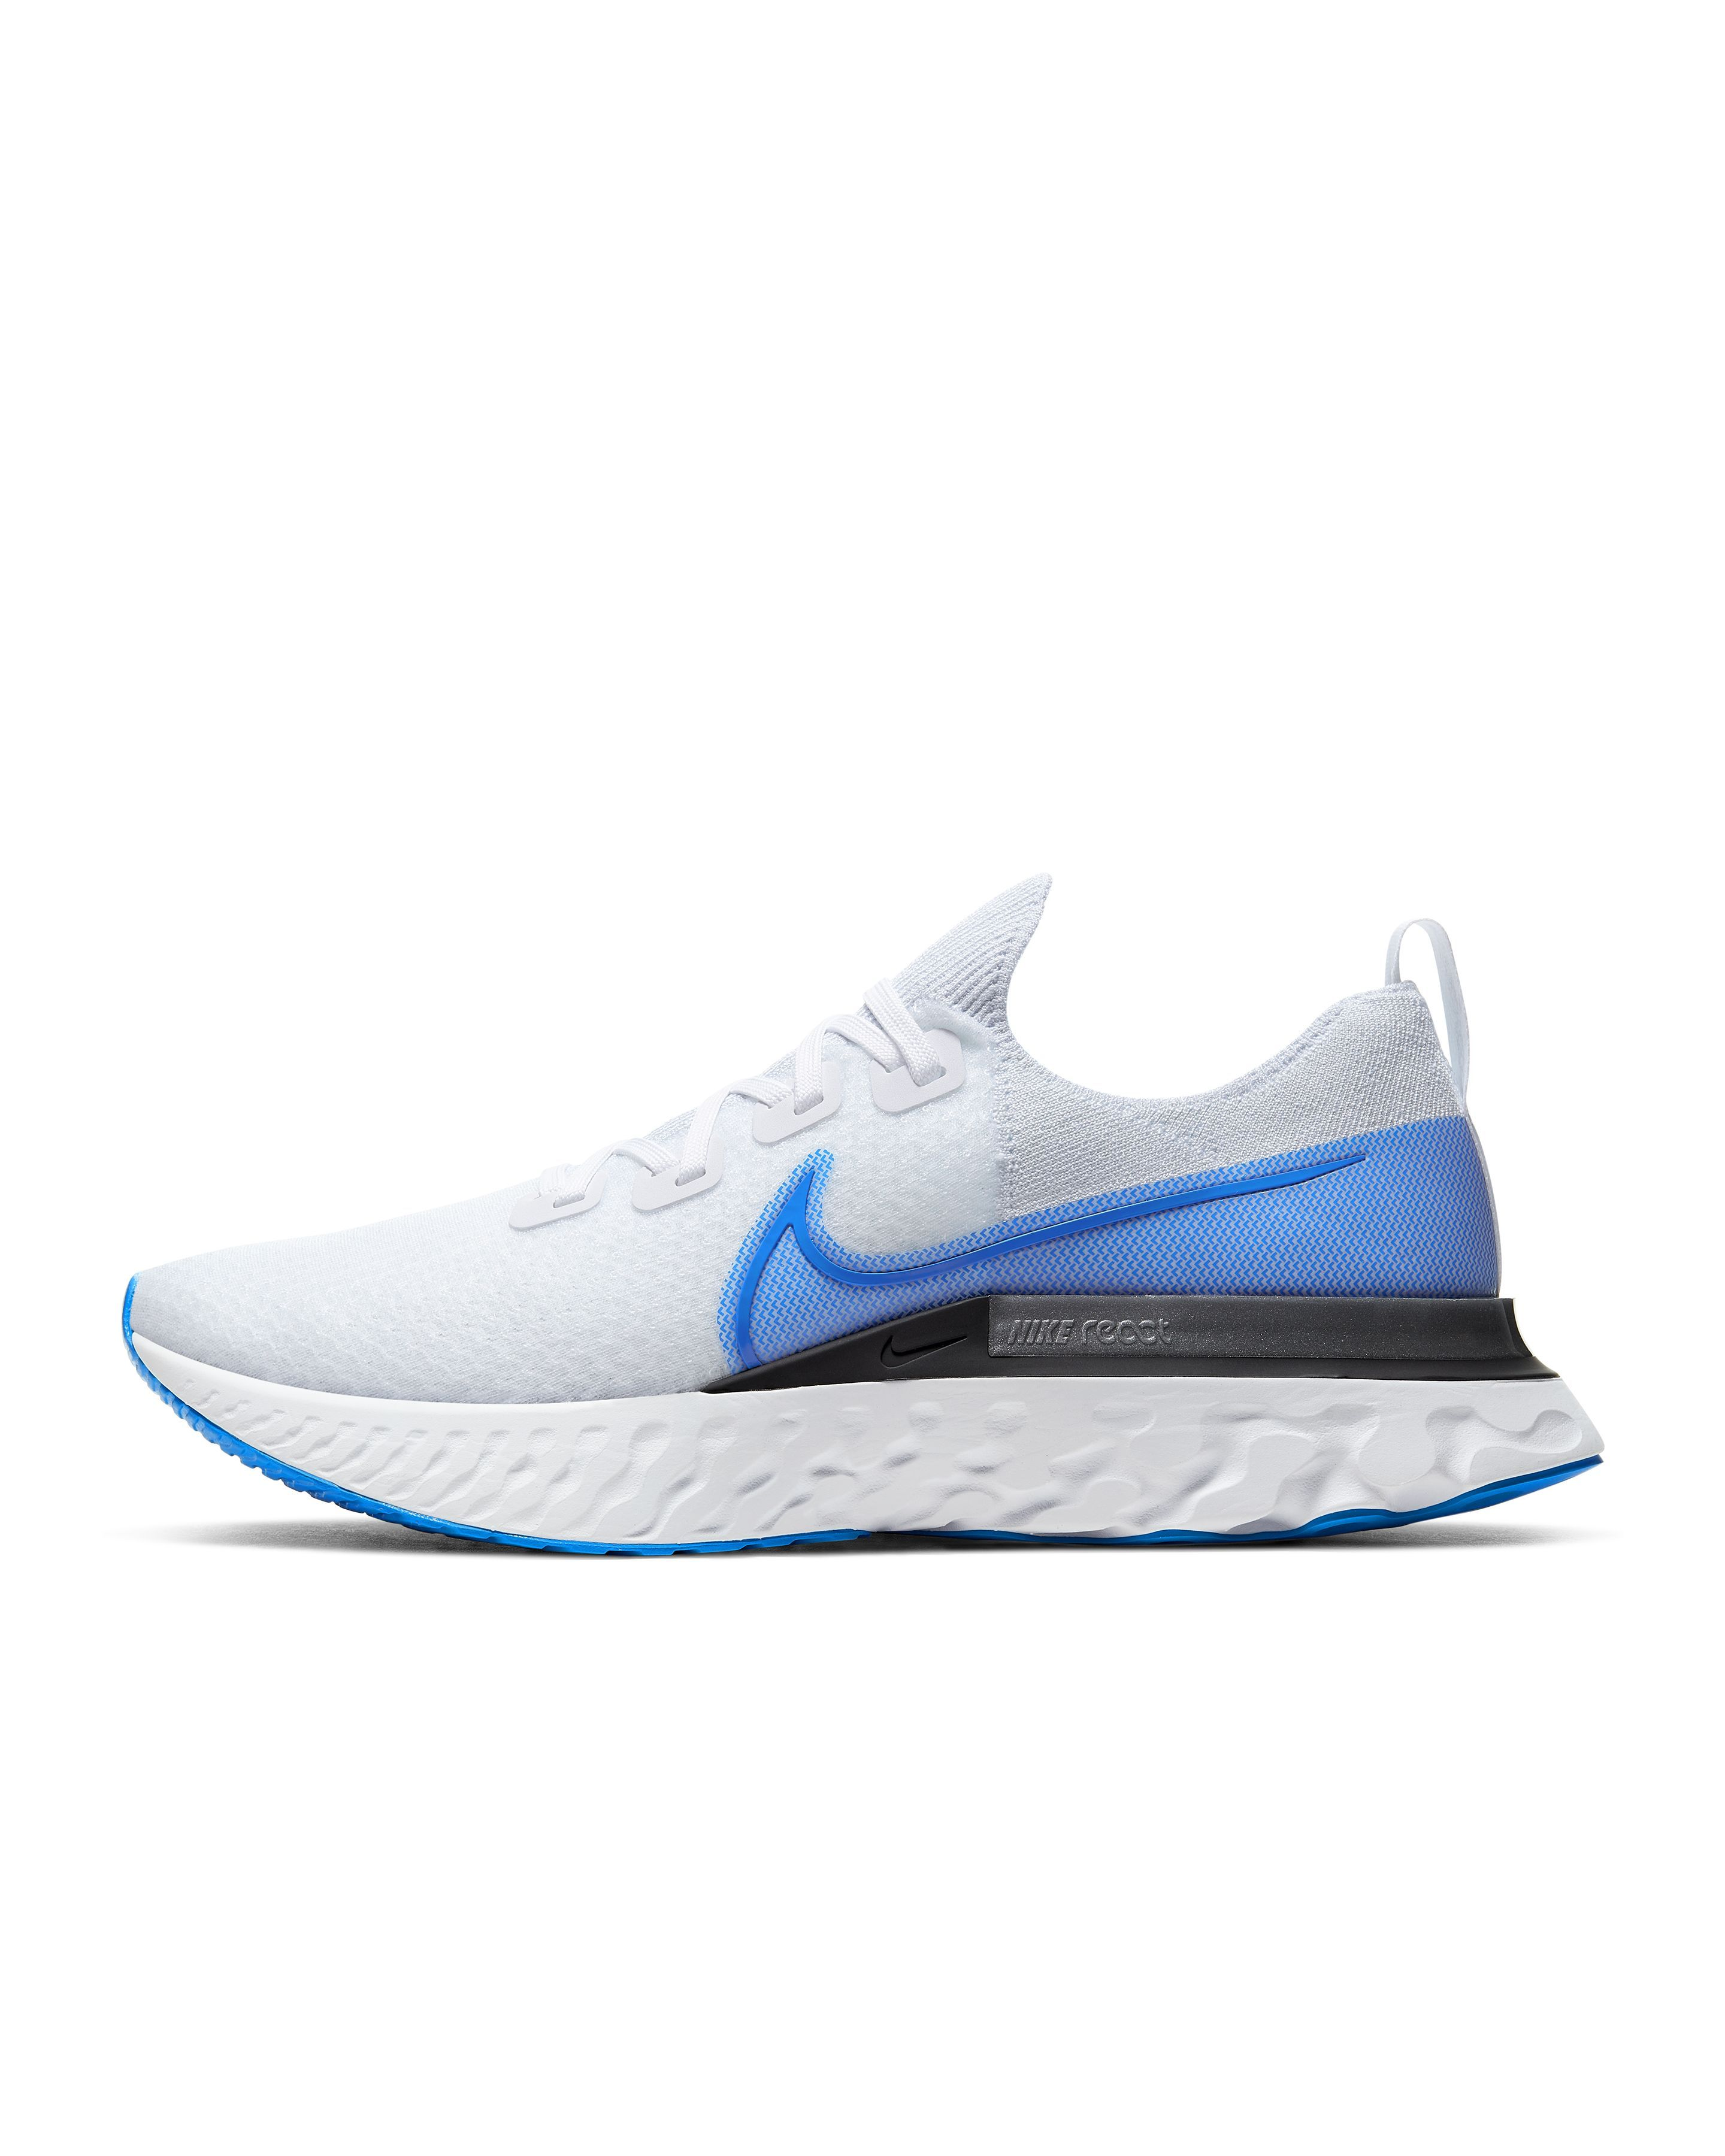 The best Nike running shoes 2020